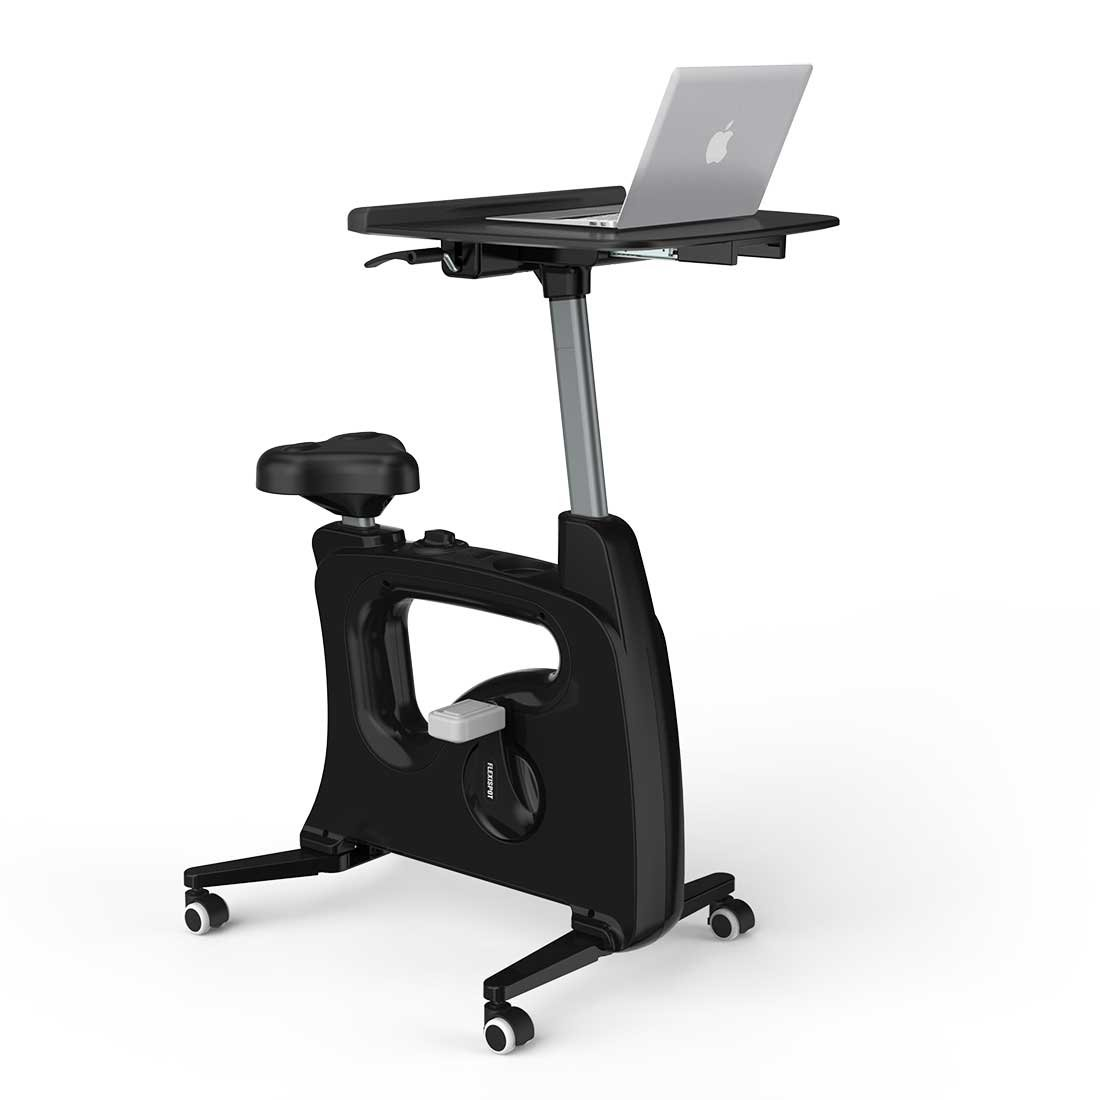 FLEXISPOT Home Office Upright Stationary Fitness Exercise Cycling Bike Height Adjustable Standing Desk - Deskcise Pro Black by FLEXISPOT (Image #1)